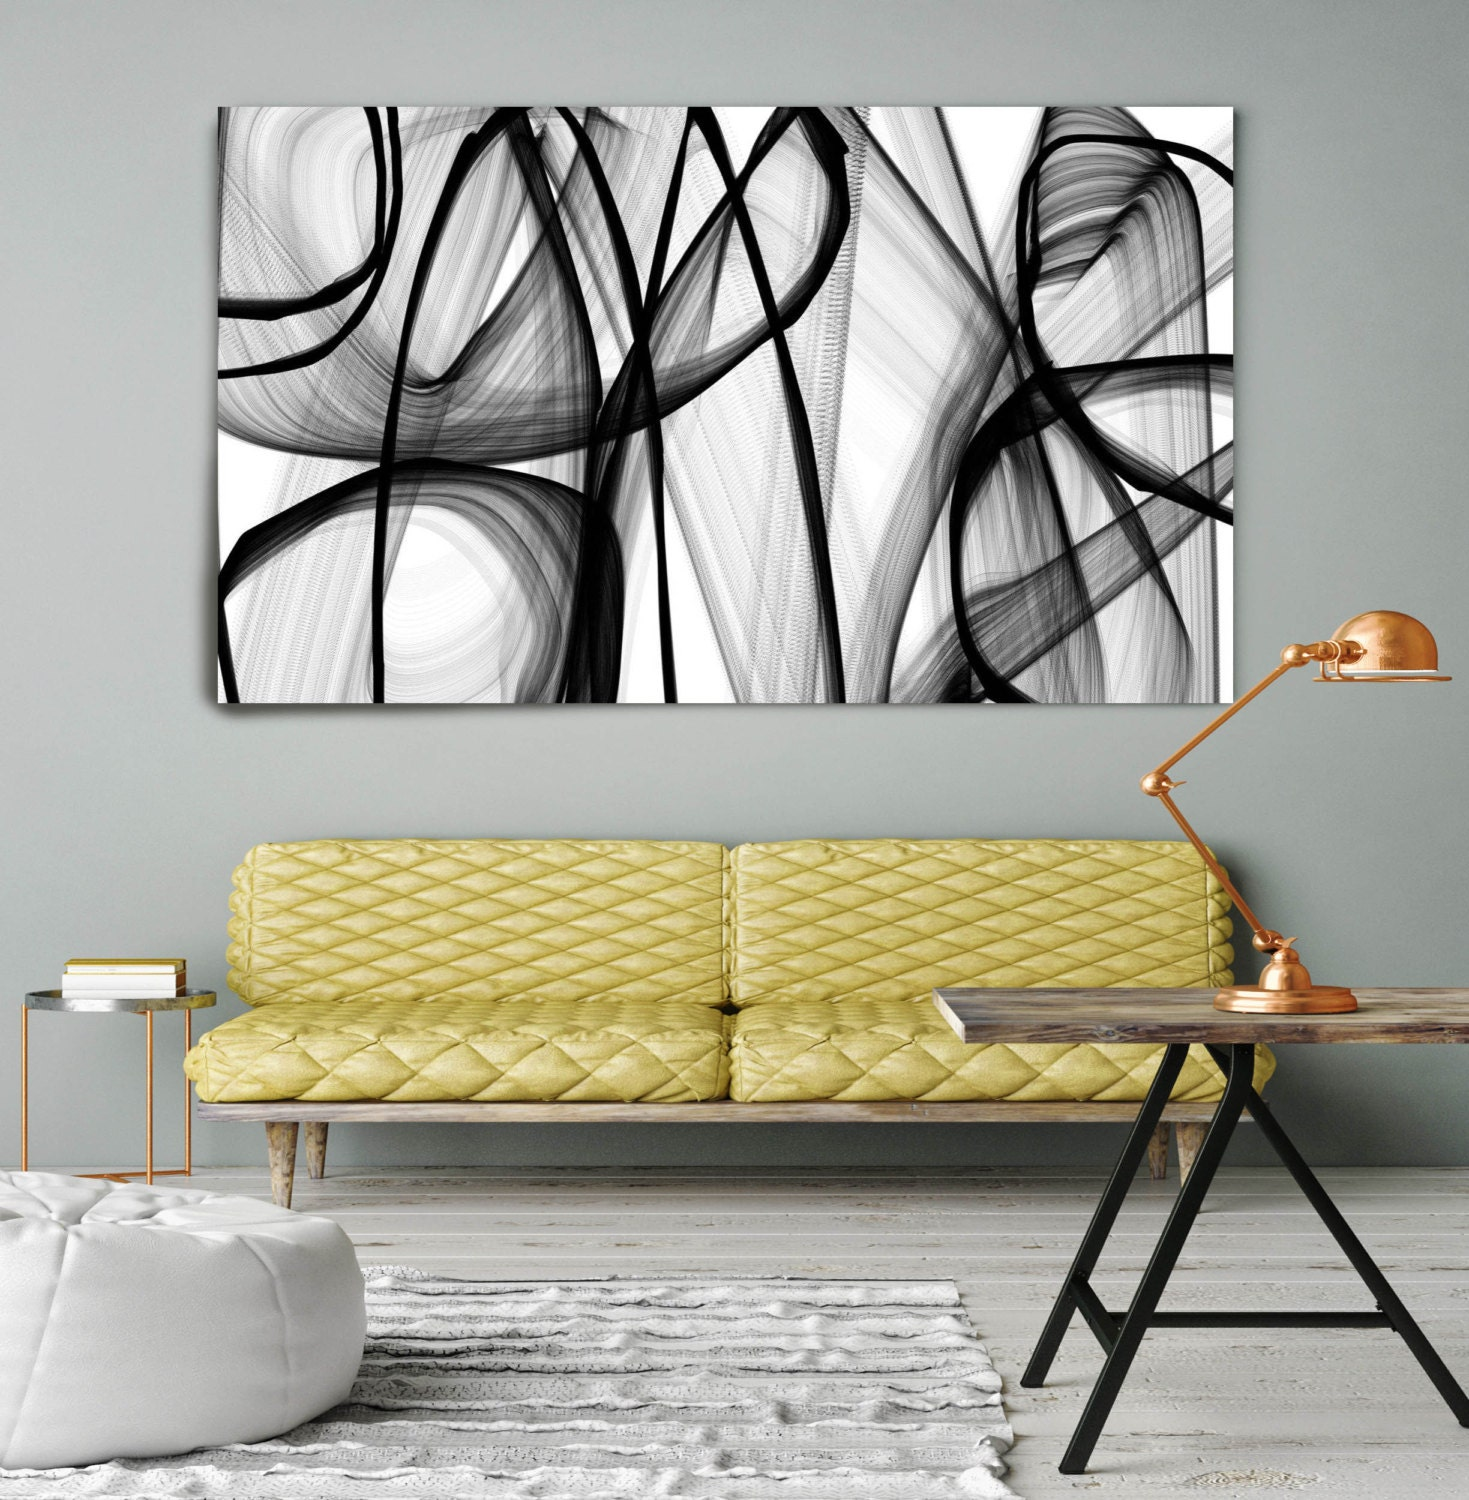 A Spiritual Being Contemporary Abstract Black And White Unique Wall Decor Large Contemporary Canvas Art Print Up To 72 By Irena Orlov